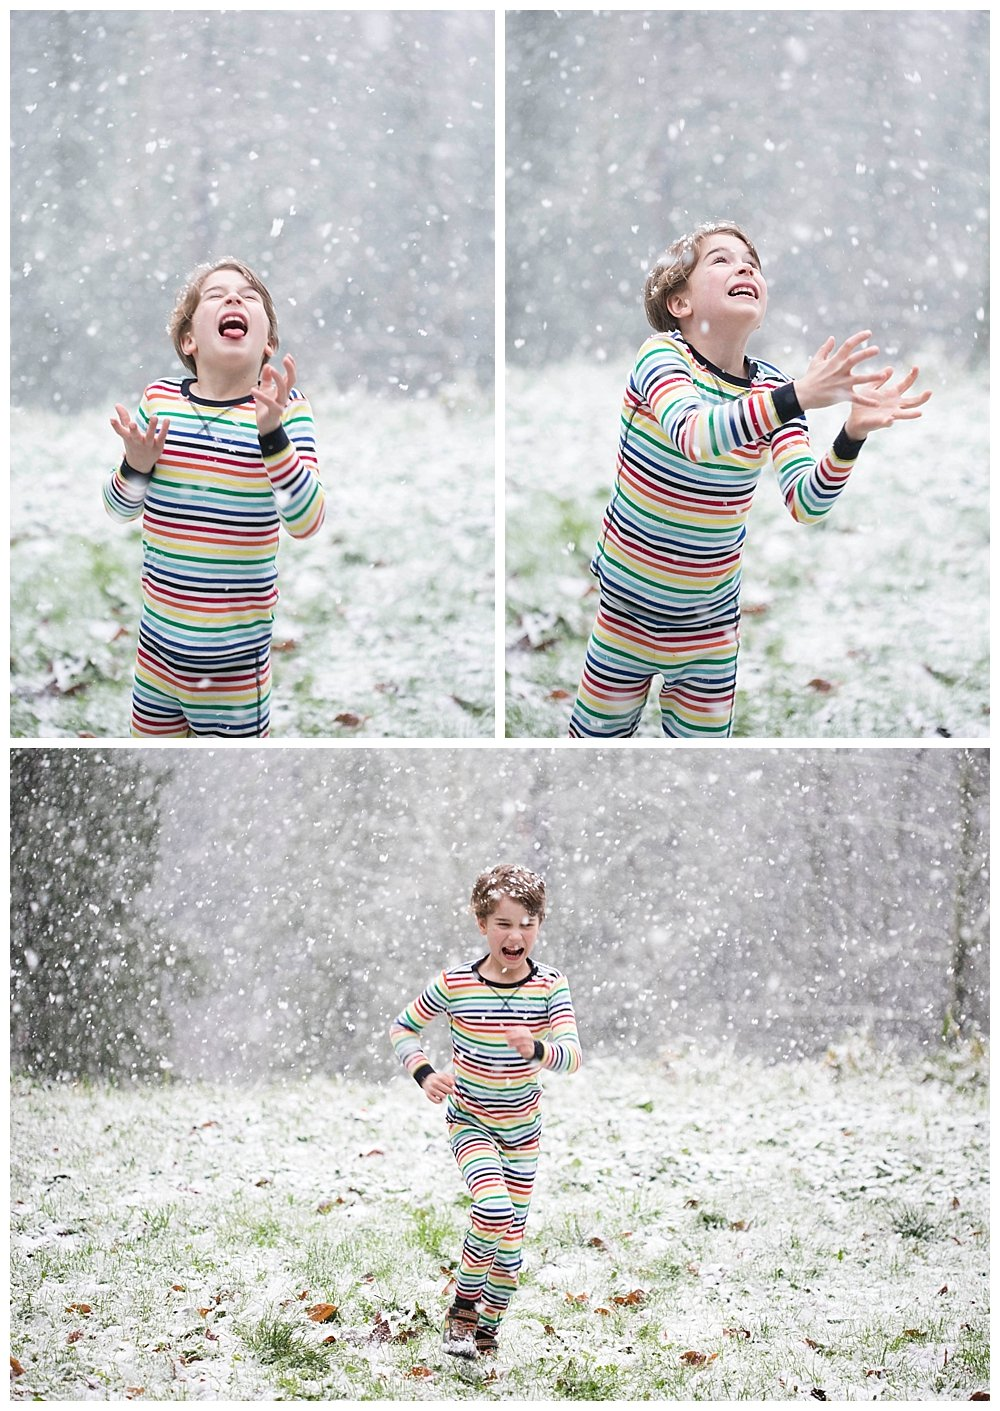 Enjoying some unexpected snow here in the Pacific Northwest...in Apollo's favorite Primary pajamas!